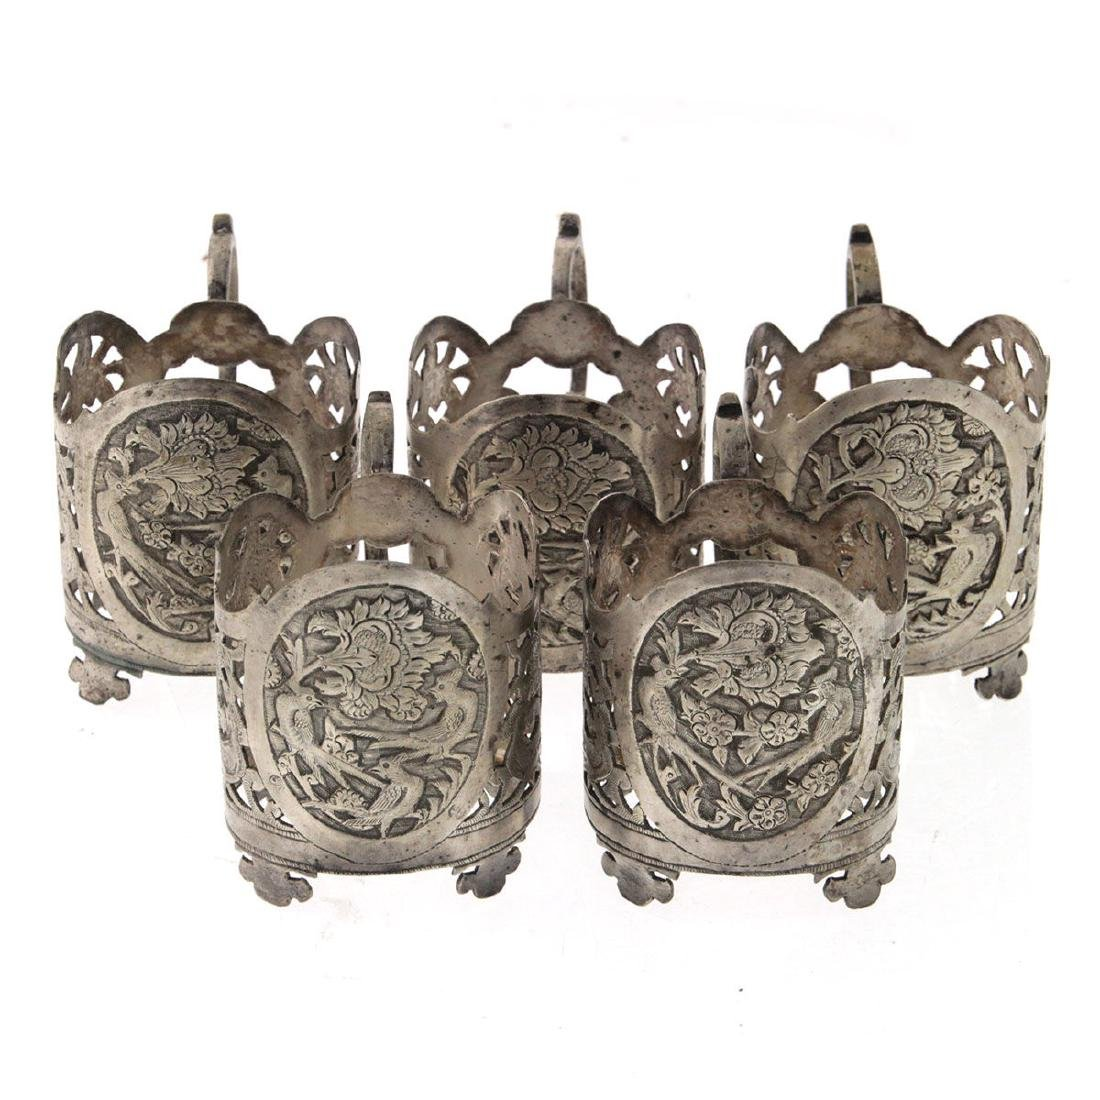 Set of Five Persian Silver Glass Holders, Circa 1900.